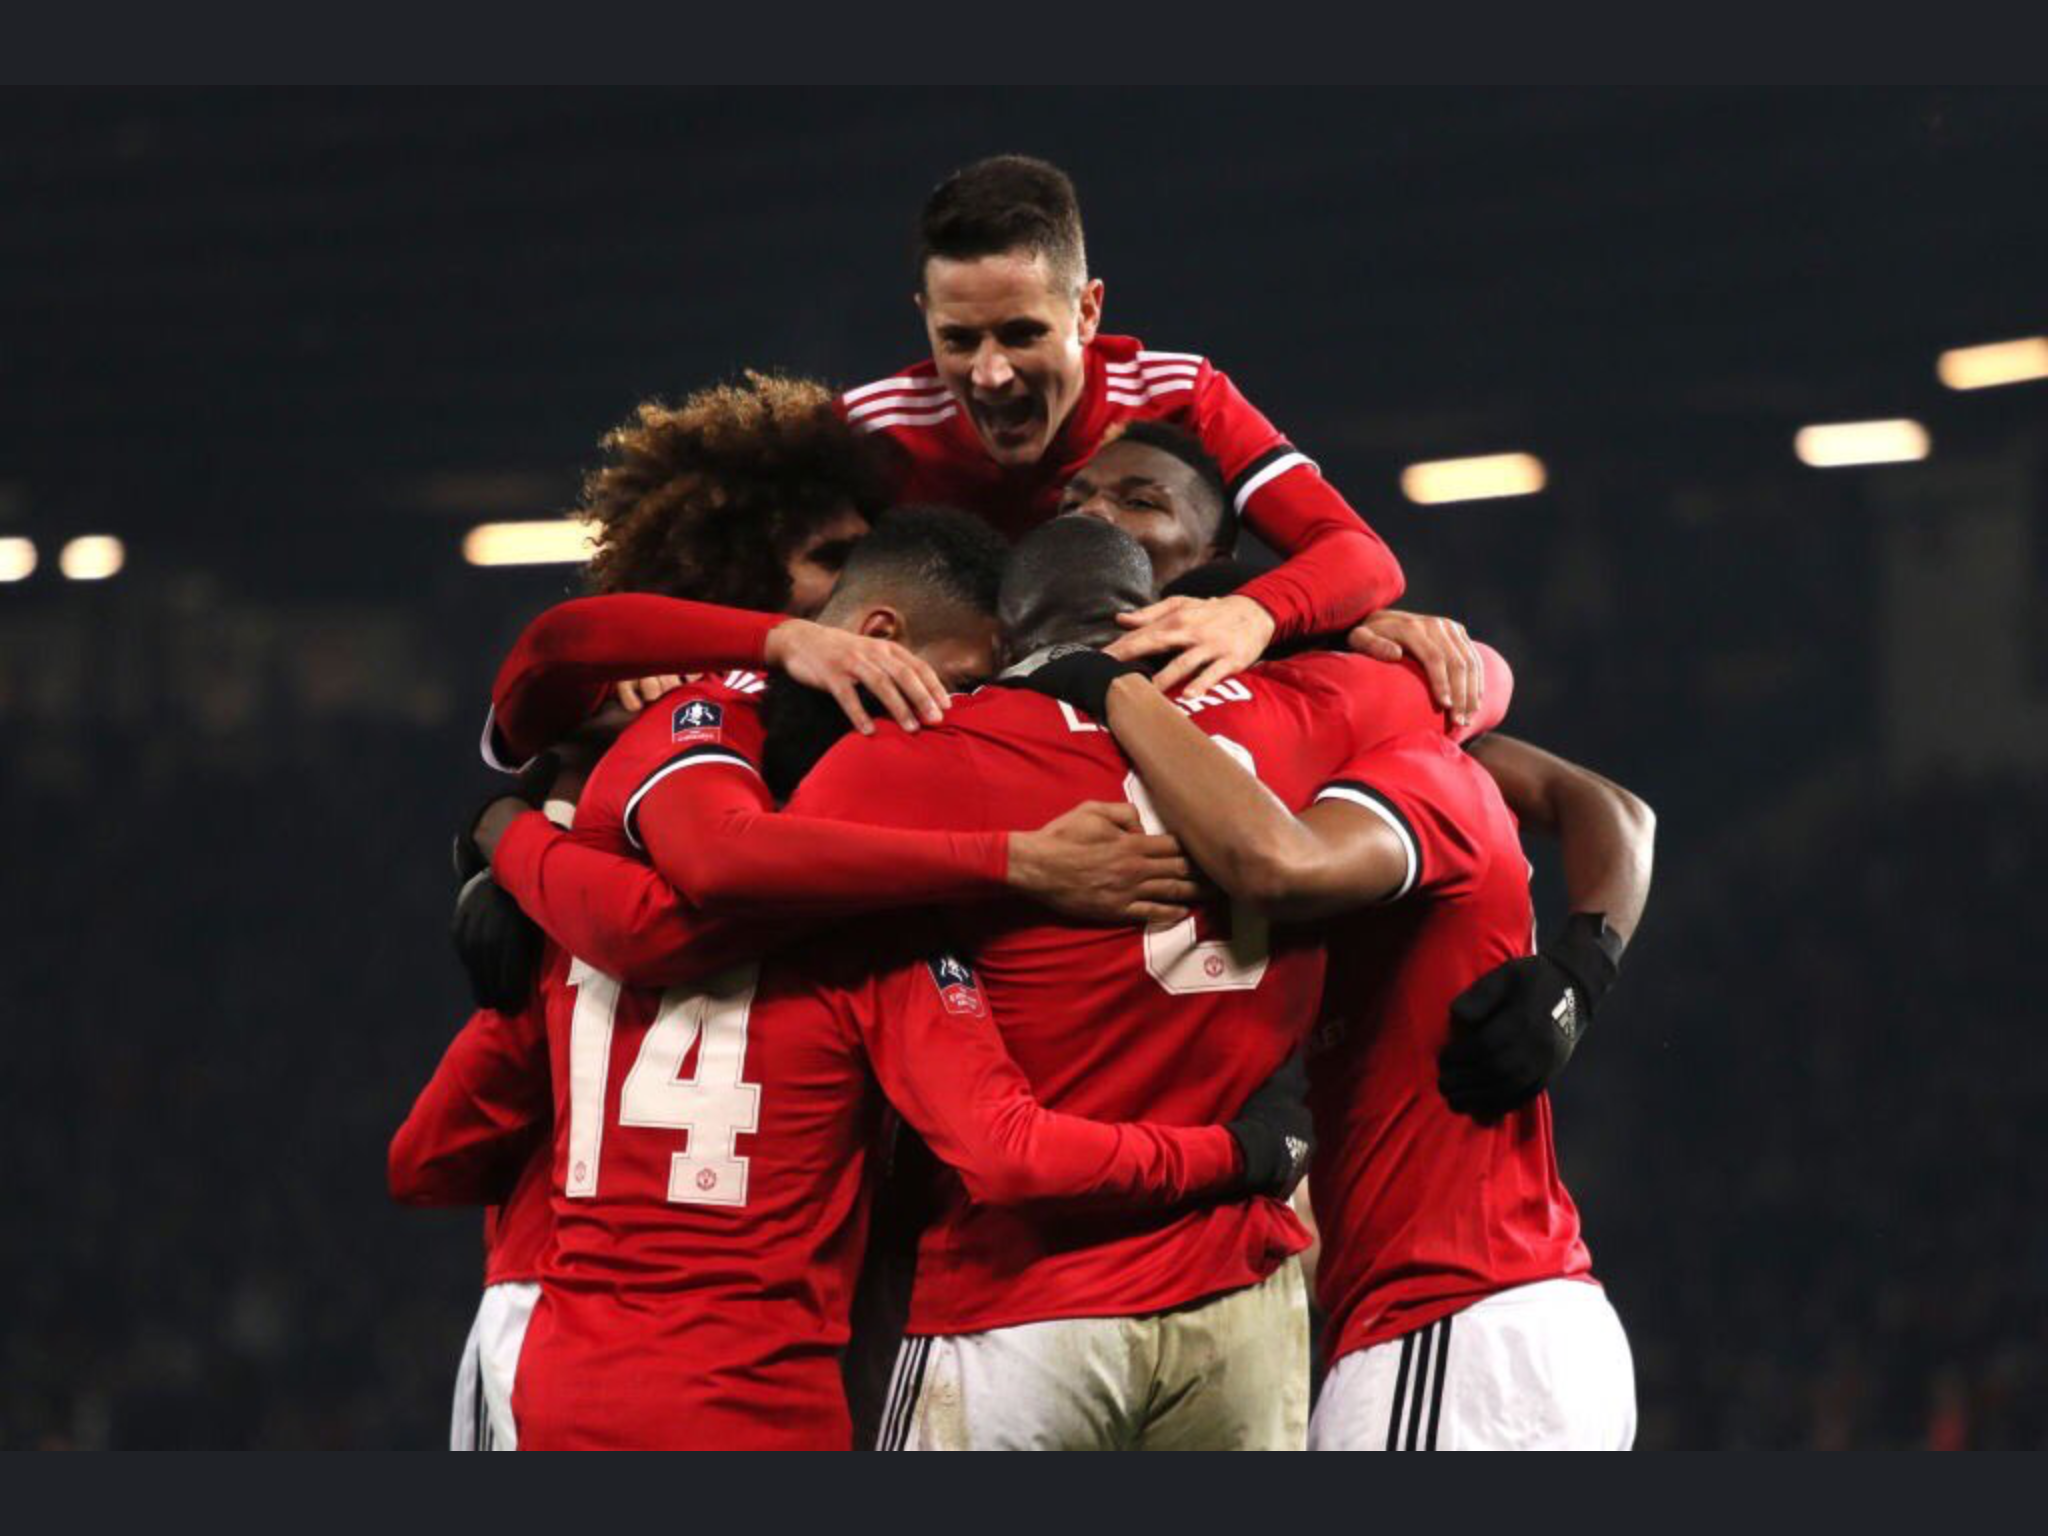 Pin by Chef James Foster Colson on Manchester united Fa